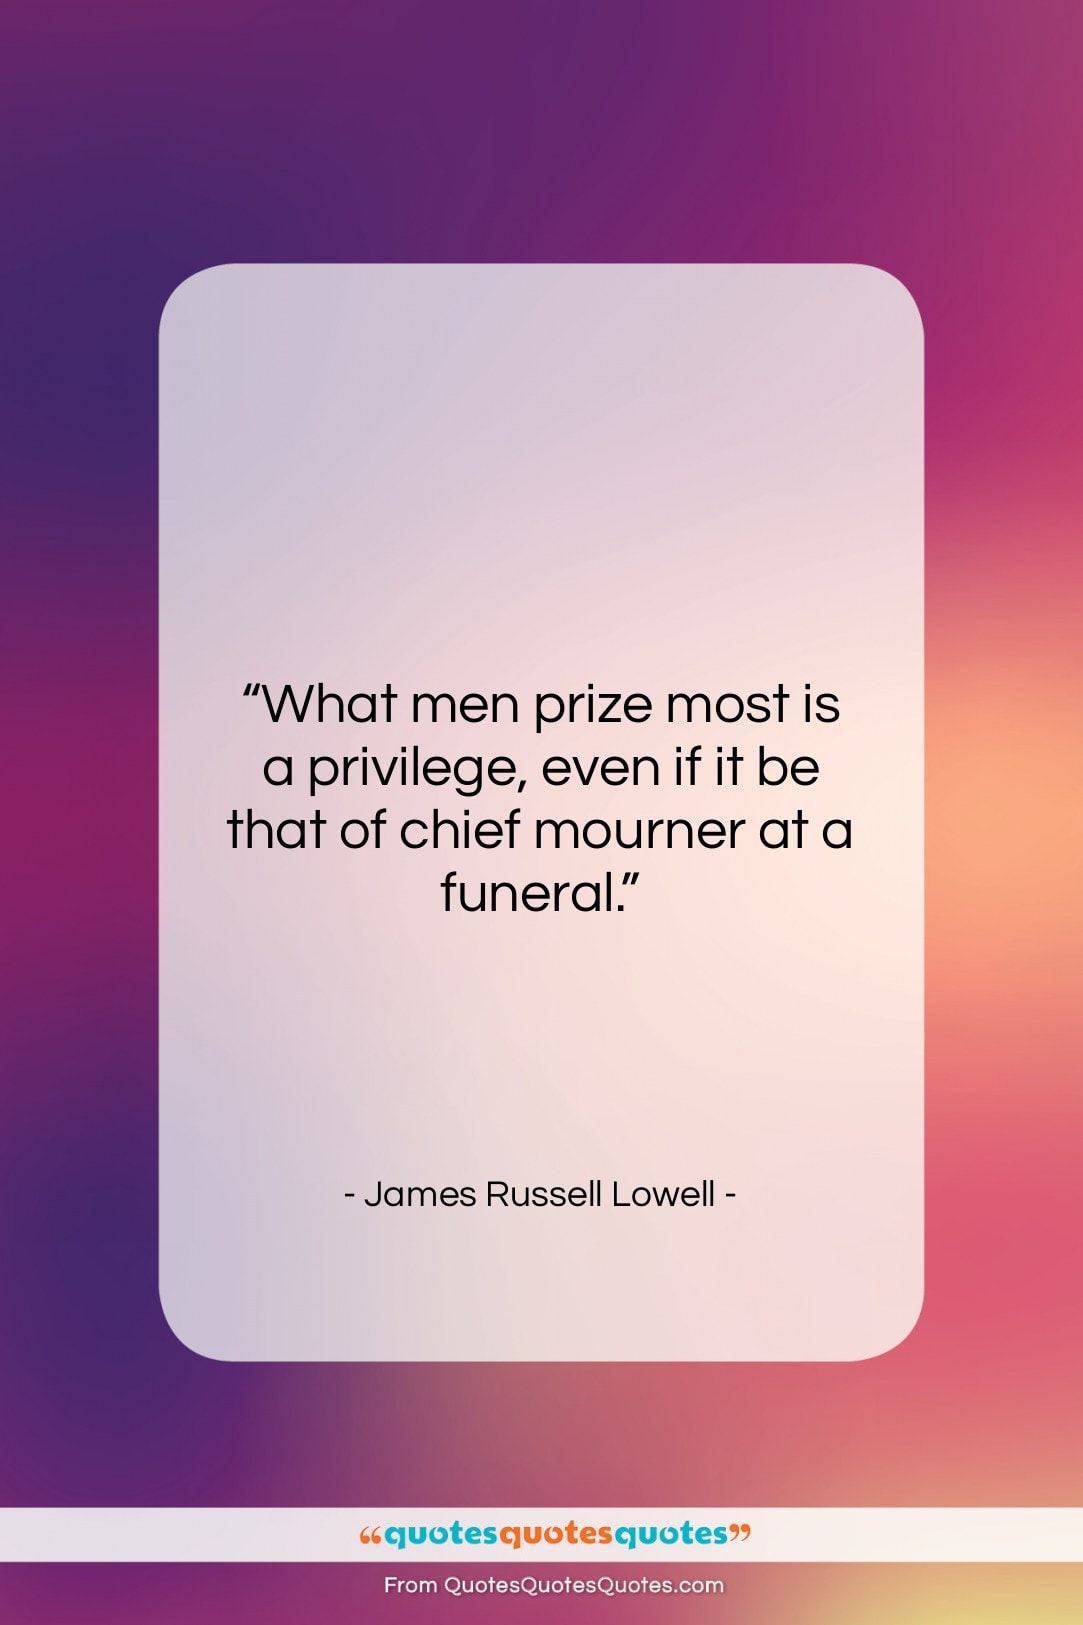 """James Russell Lowell quote: """"What men prize most is a privilege,…""""- at QuotesQuotesQuotes.com"""